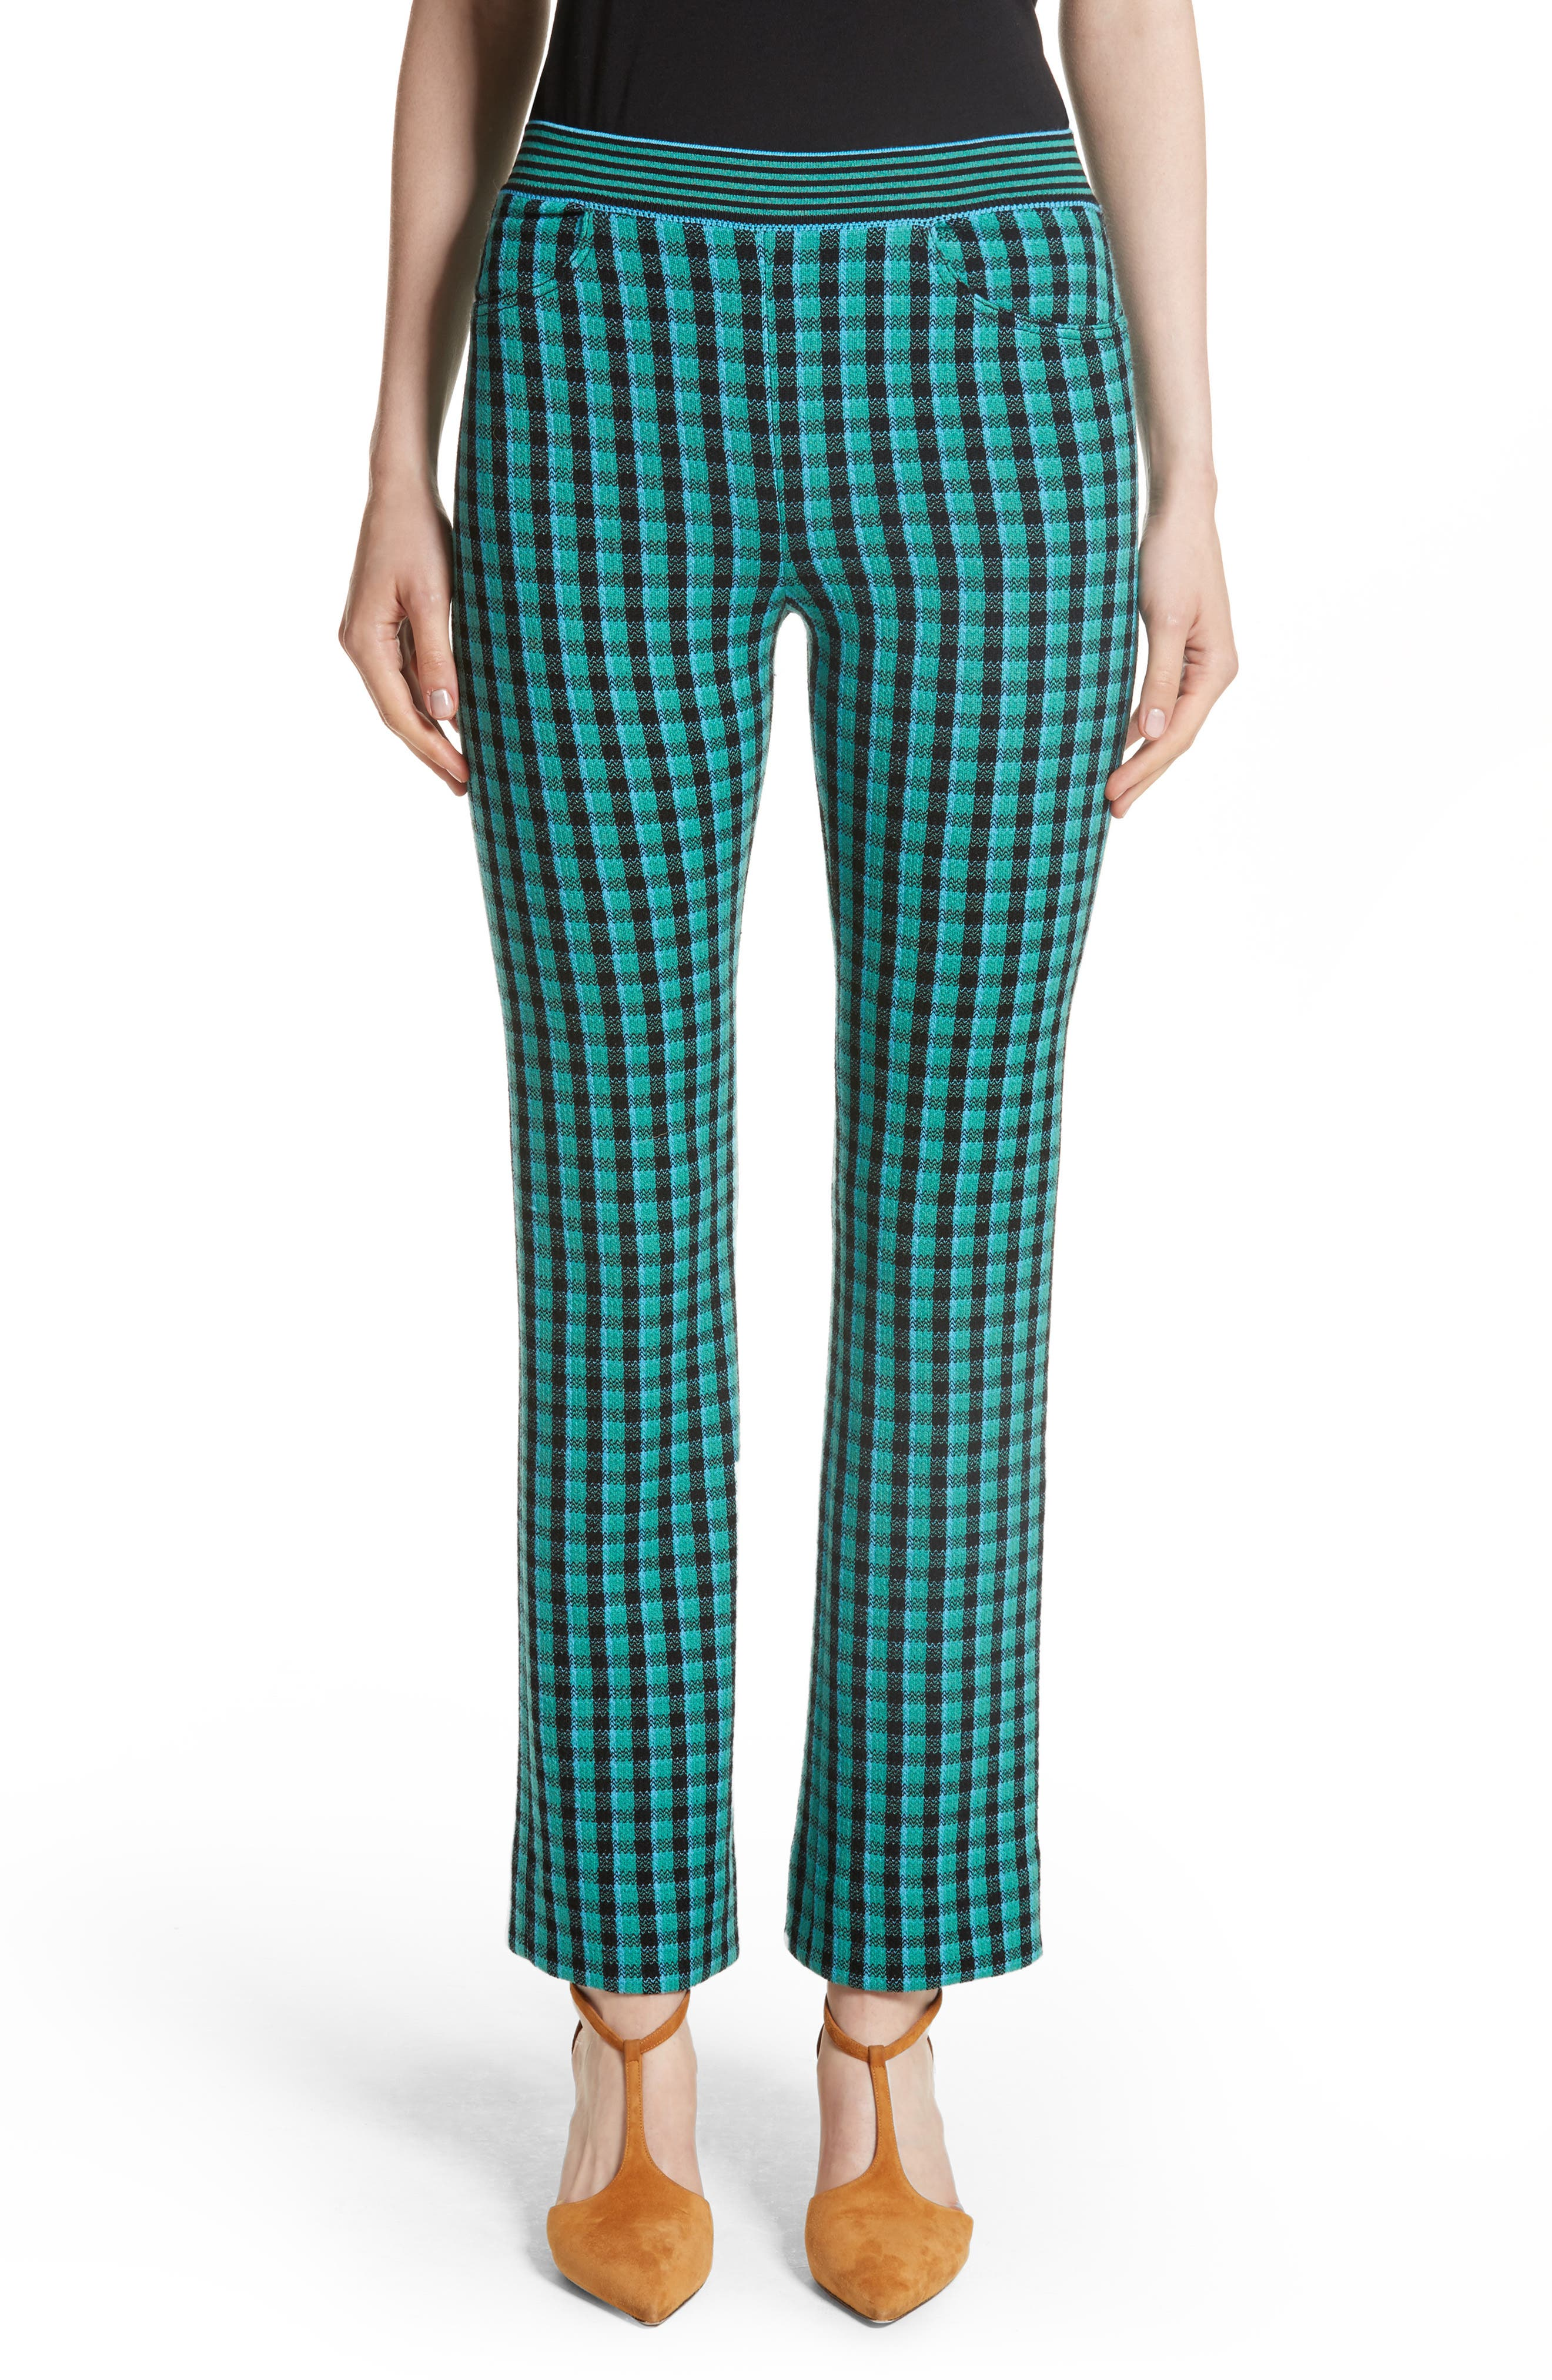 Plaid Stretch Wool Knit Pants,                             Main thumbnail 1, color,                             Green/ Blue